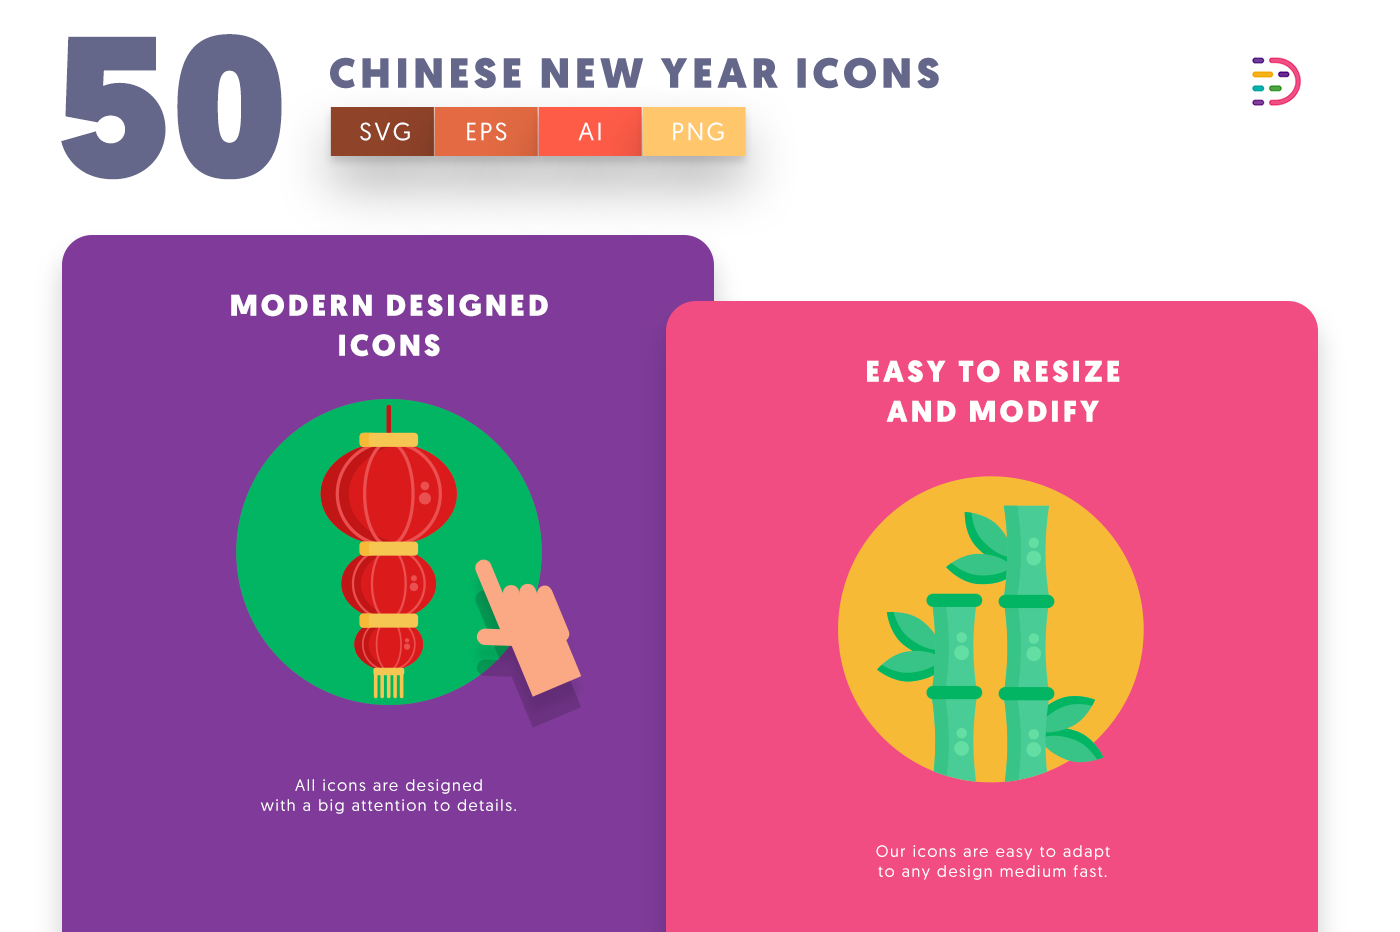 Chinese New Year icons png/svg/eps